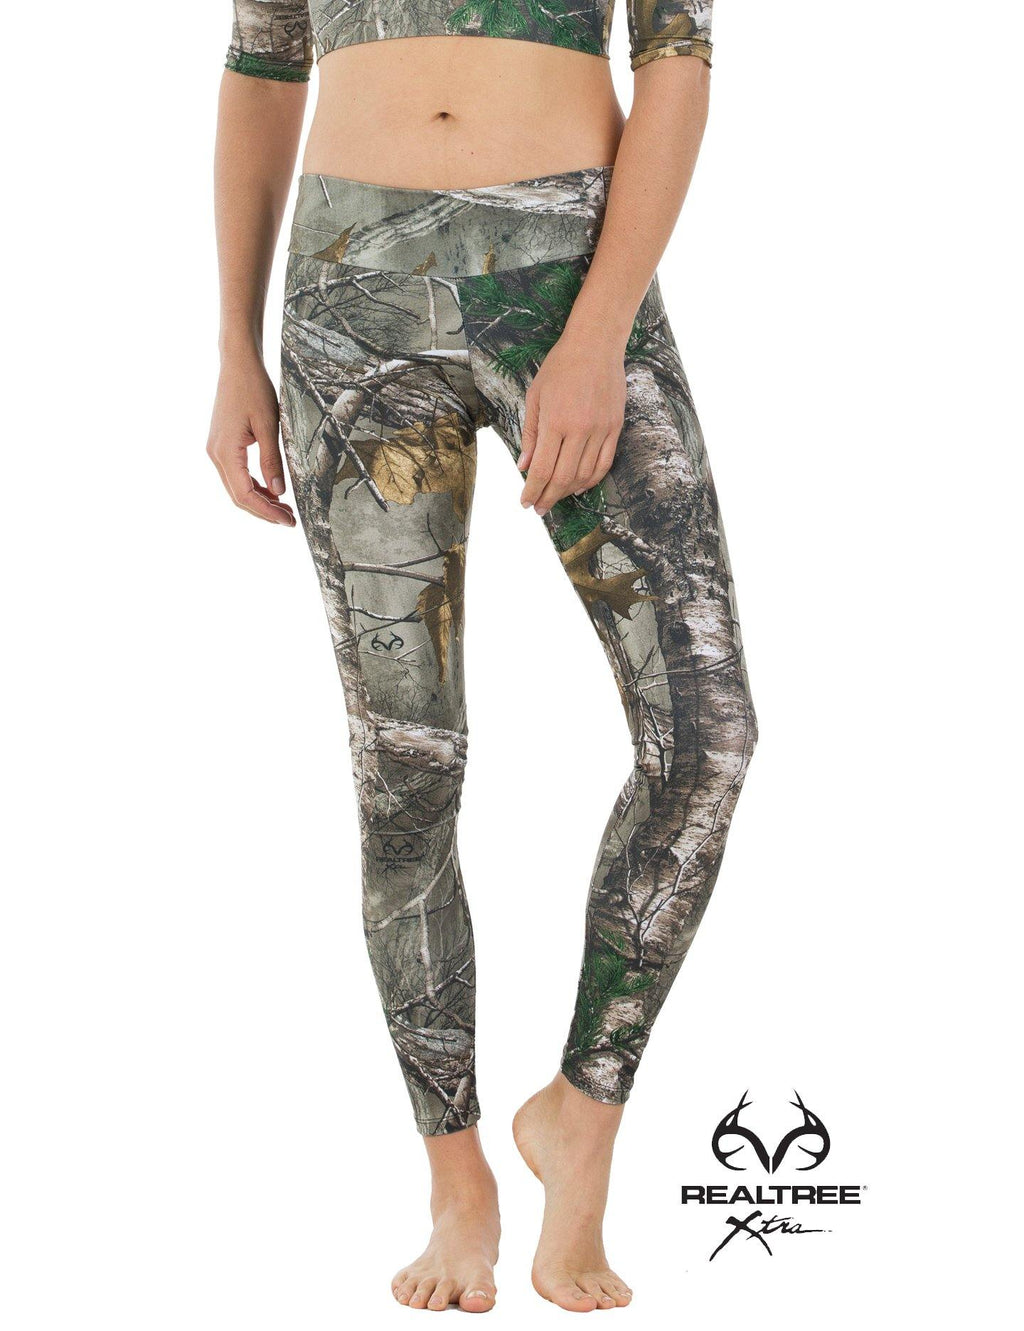 Apsara Leggings Low Waist Full Length, Realtree Xtra - Apsara Style